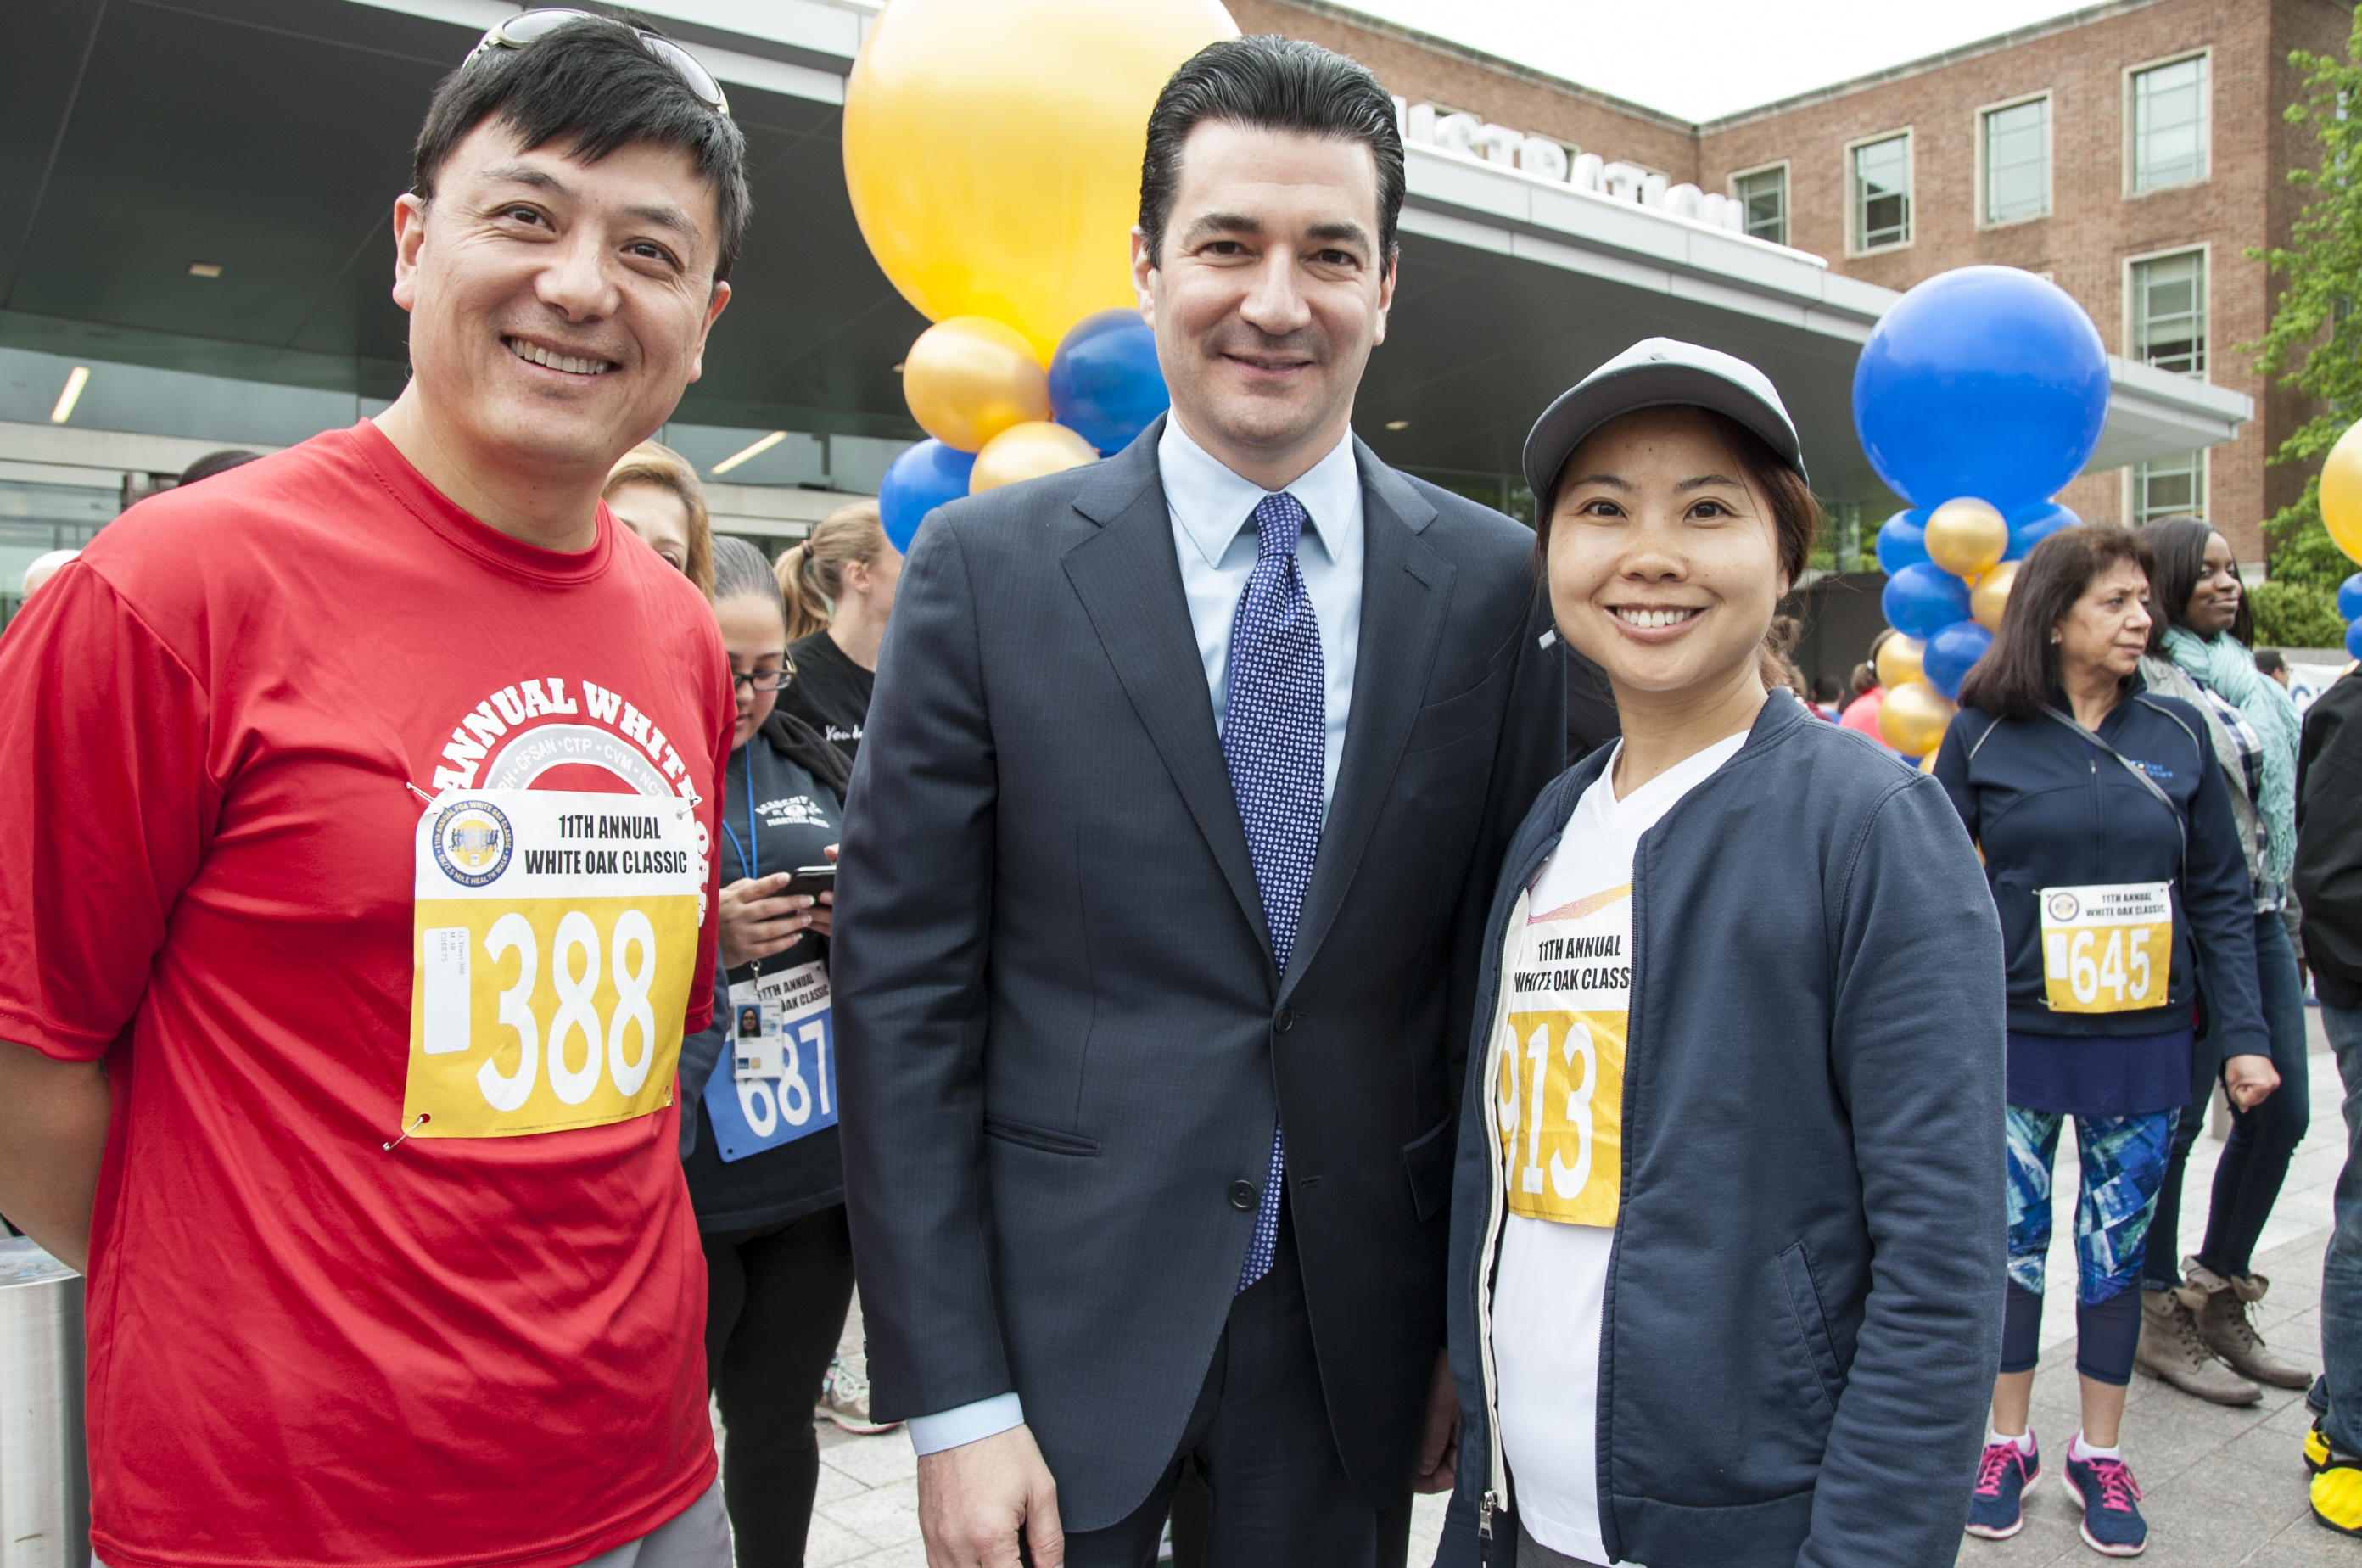 filedr scott gottlieb meets fda staff at 11th annual white oak classic